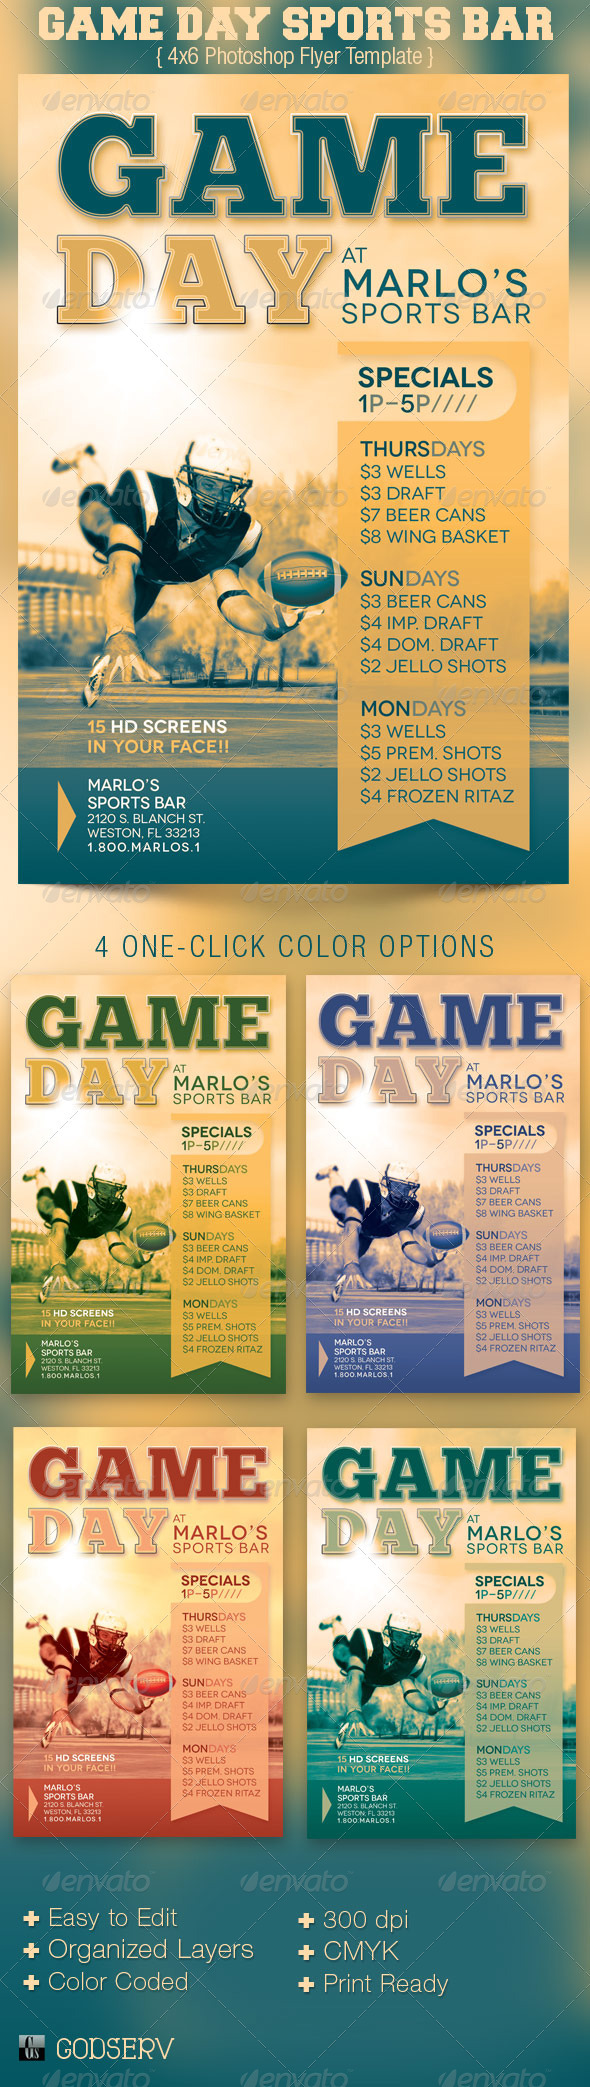 Game day sports bar flyer template graphicmule for Sports day poster template